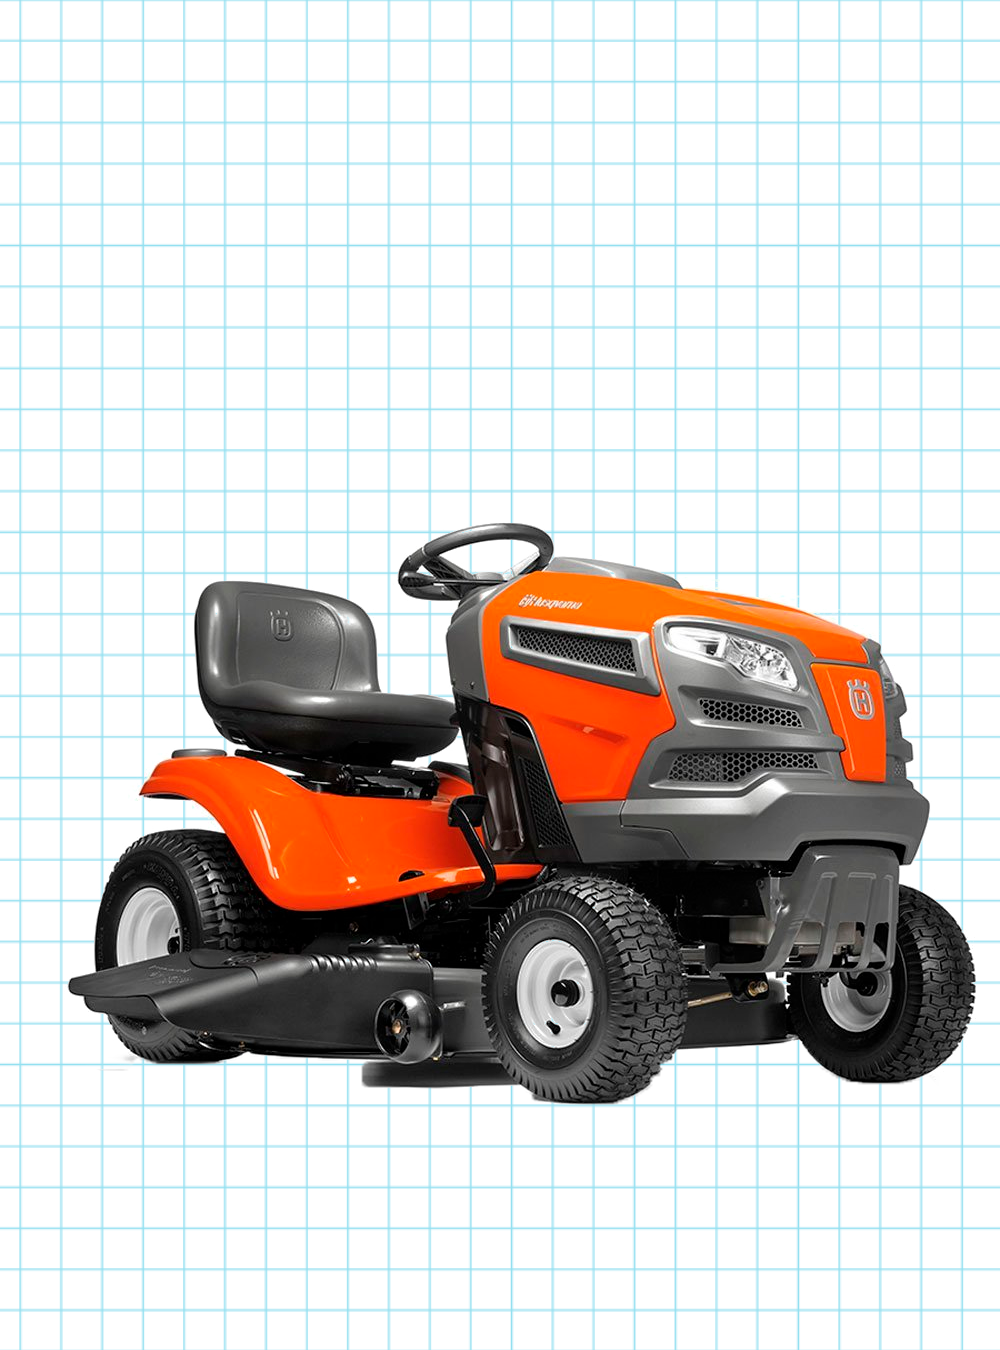 Lawn Mower Tractor >> Husqvarna Yth21k46 21 Hp Hydrostatic 46 In Riding Lawn Mower